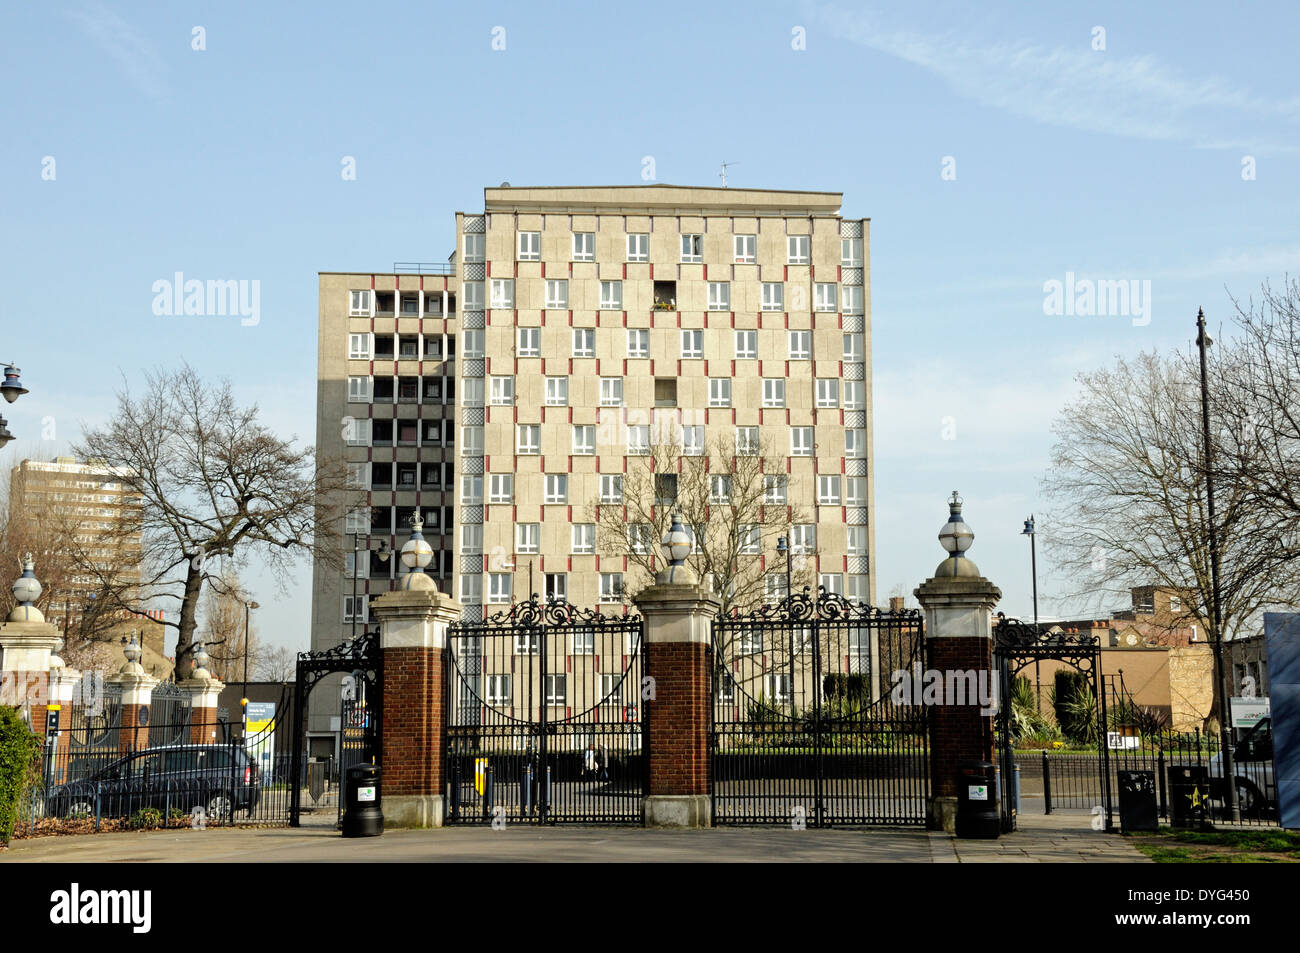 Gates Victoria Park with flats in distance, London Borough of Tower Hamlets, England Britain UK - Stock Image